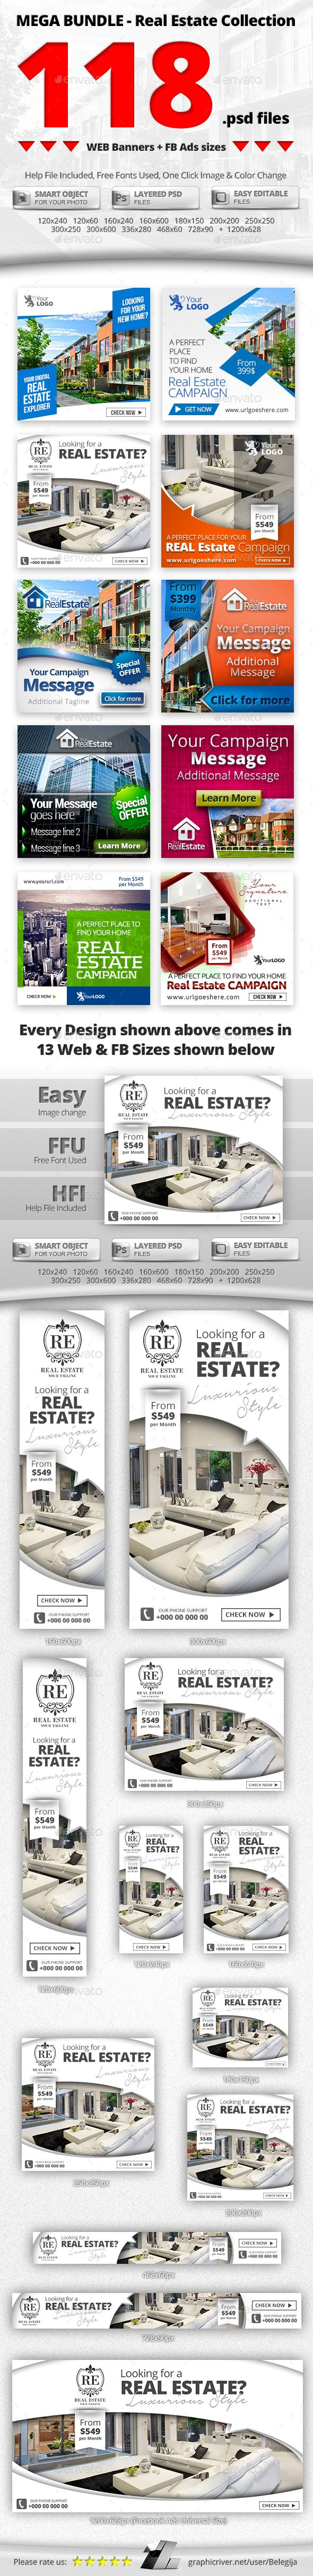 10 in 1 Real Estate Web & FB Banners - Mega Bundle 1 - Banners & Ads Web Elements Download here : https://graphicriver.net/item/10-in-1-real-estate-web-fb-banners-mega-bundle-1/19578337?s_rank=87&ref=Al-fatih